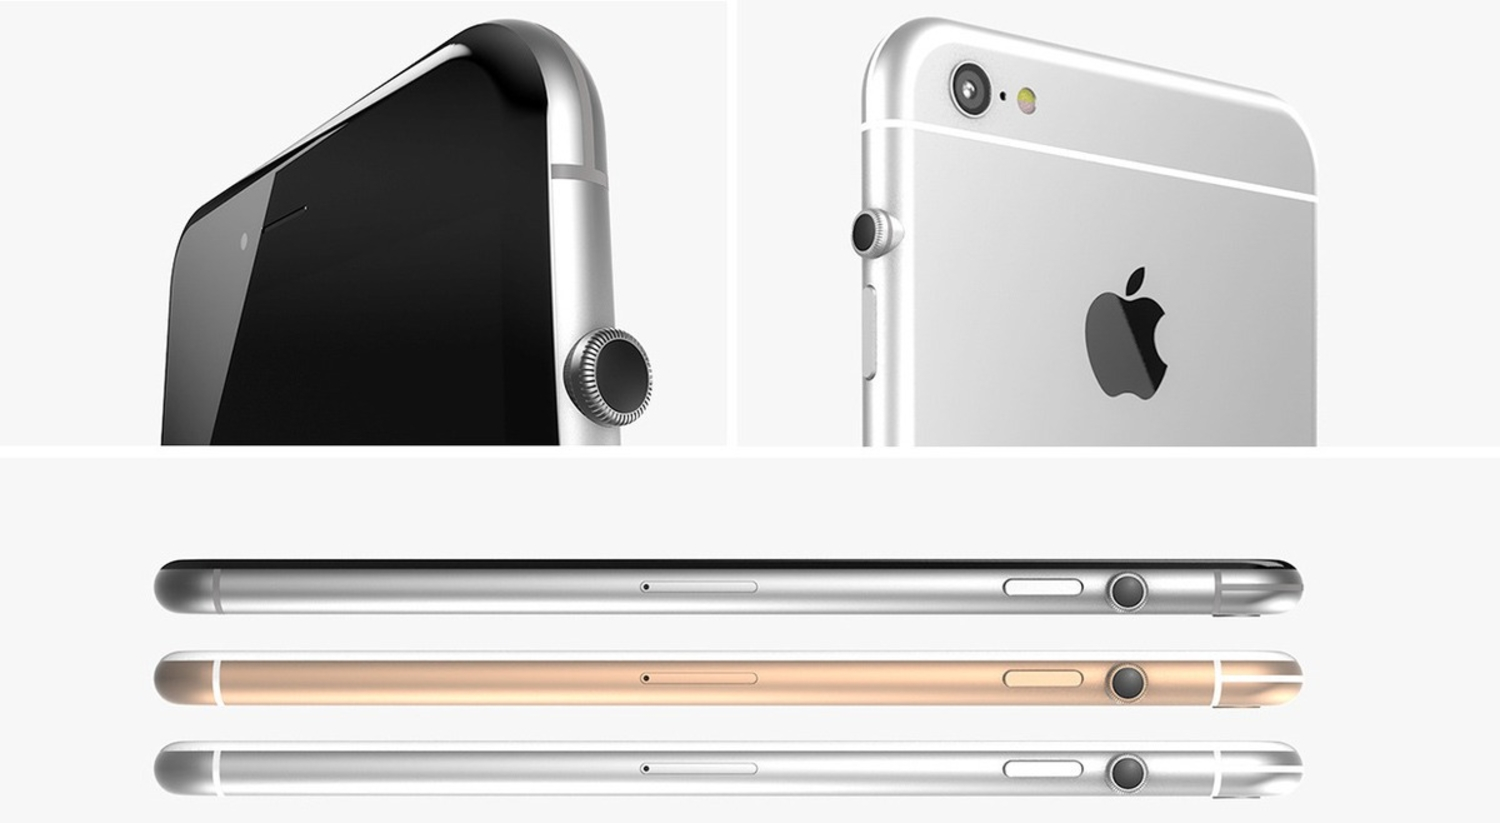 The 9 Things To Expect From The New iPhone 6S